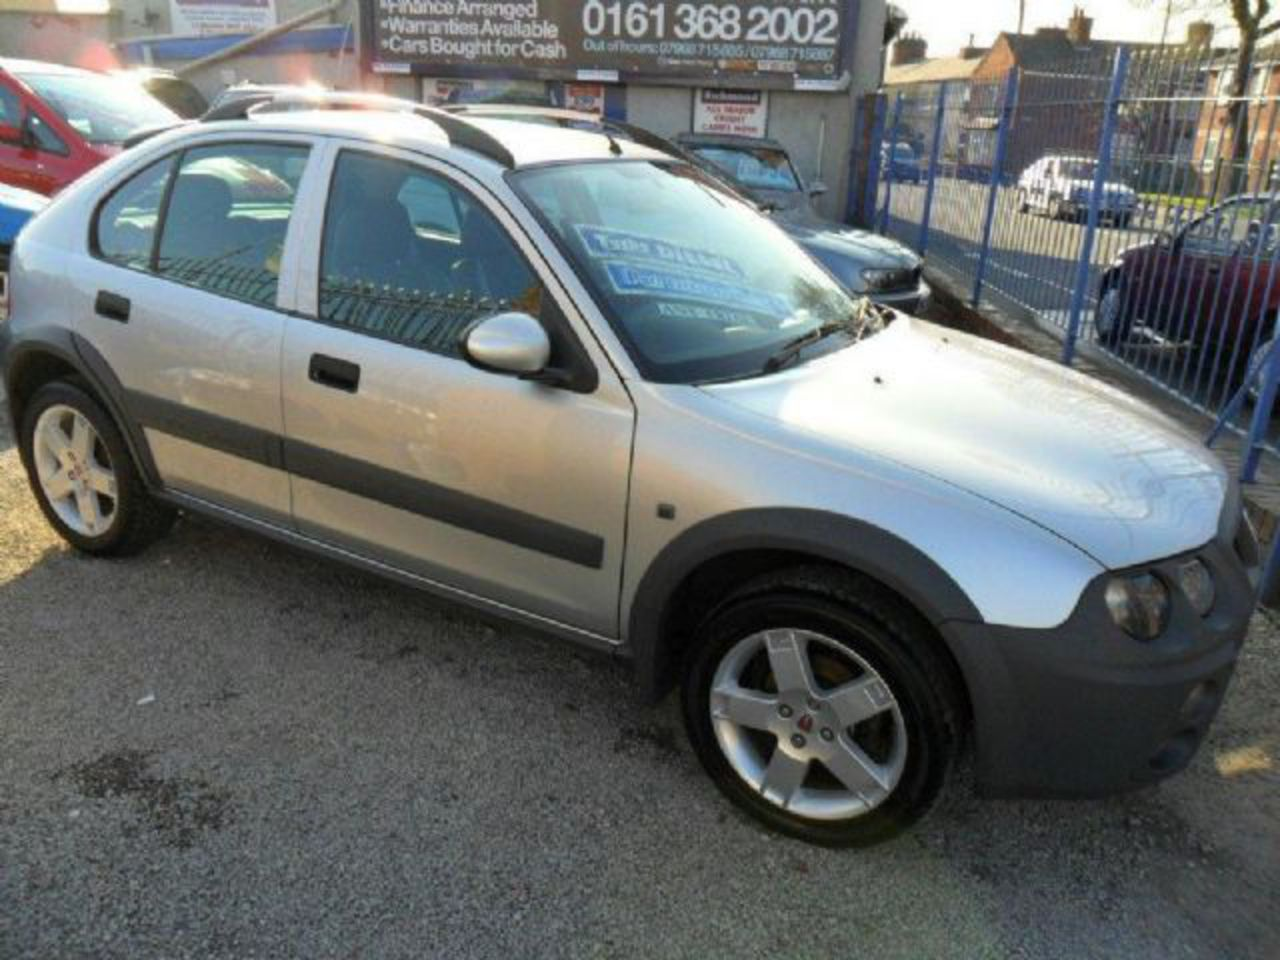 Used Rover Streetwise cars, Second Hand Rover Streetwise - Autoweb